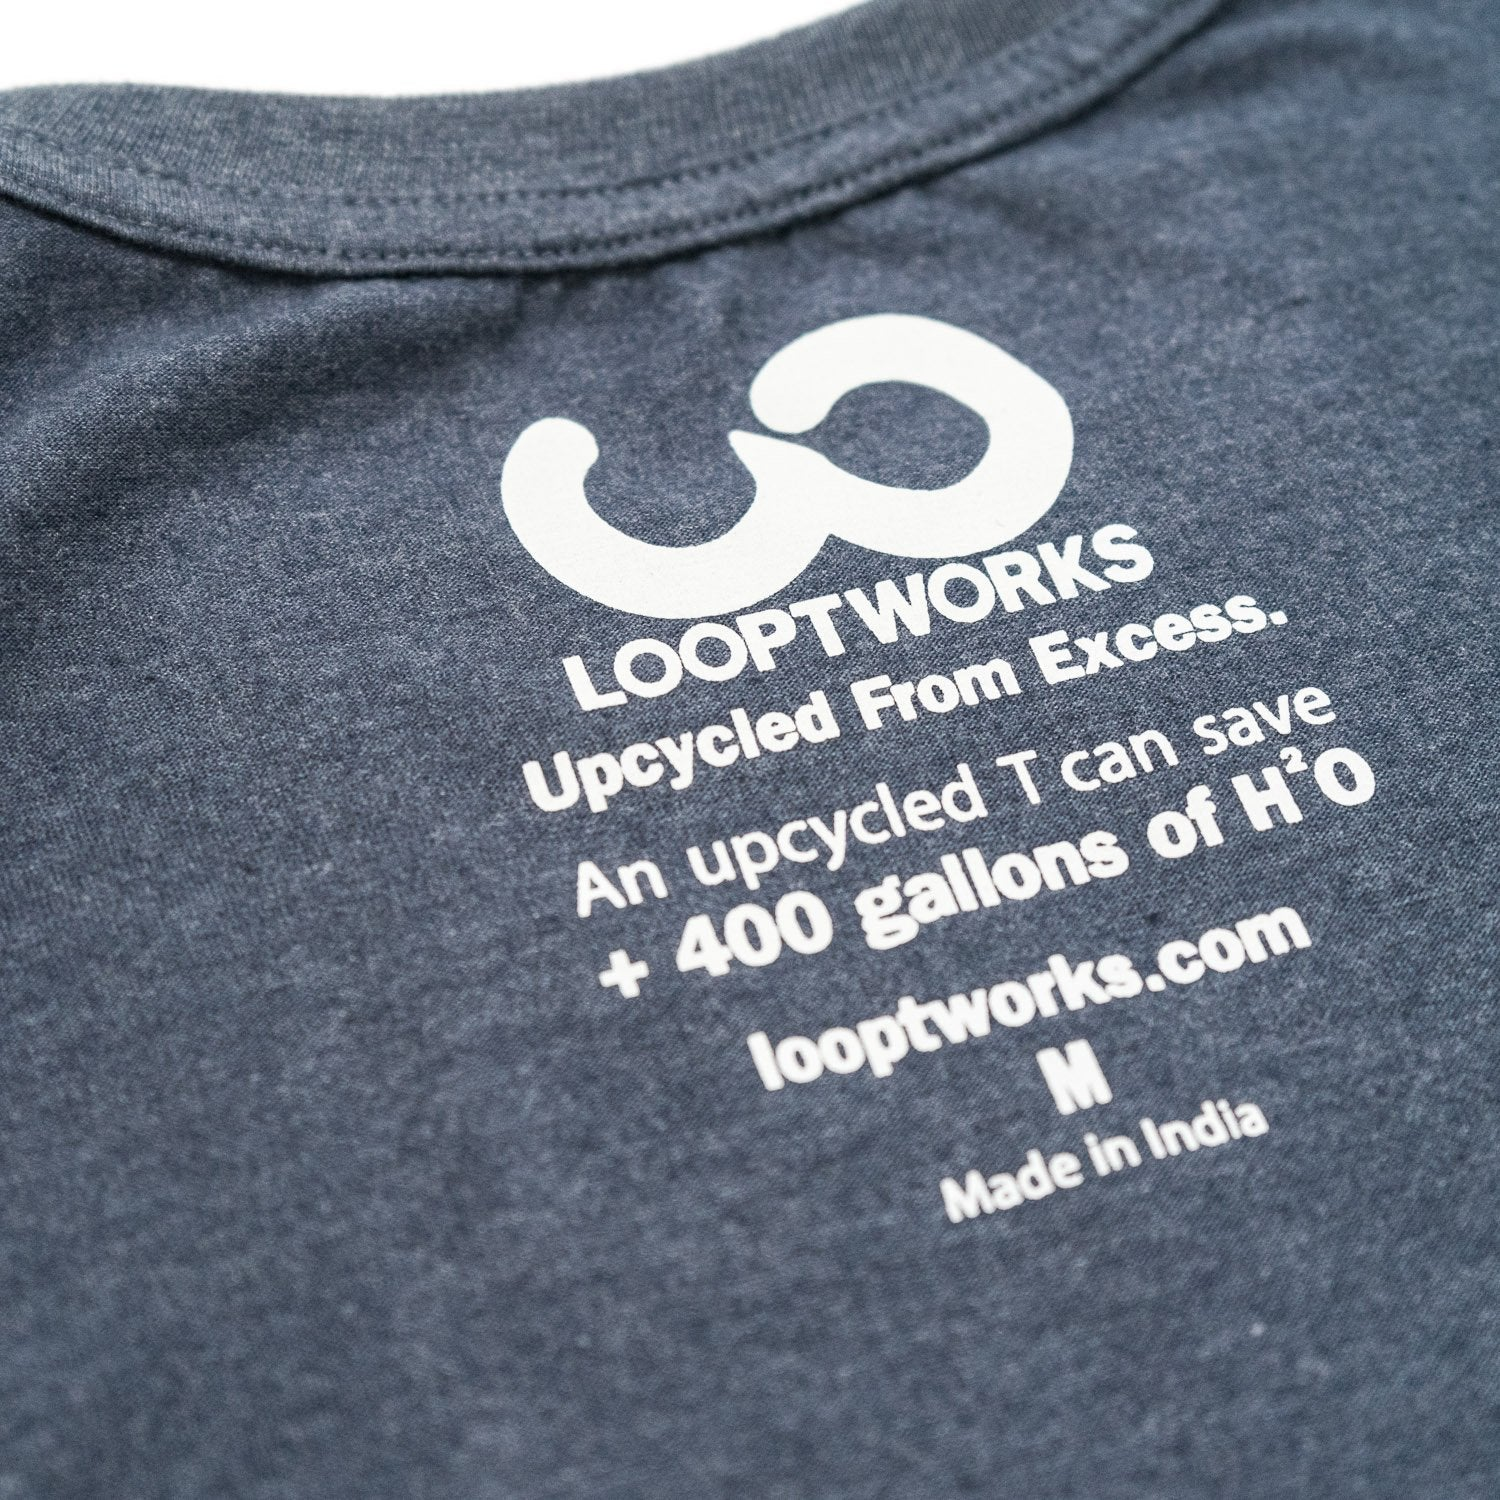 Heather Blue Men's Upcycled Tee 2 Pack Apparel - Looptworks